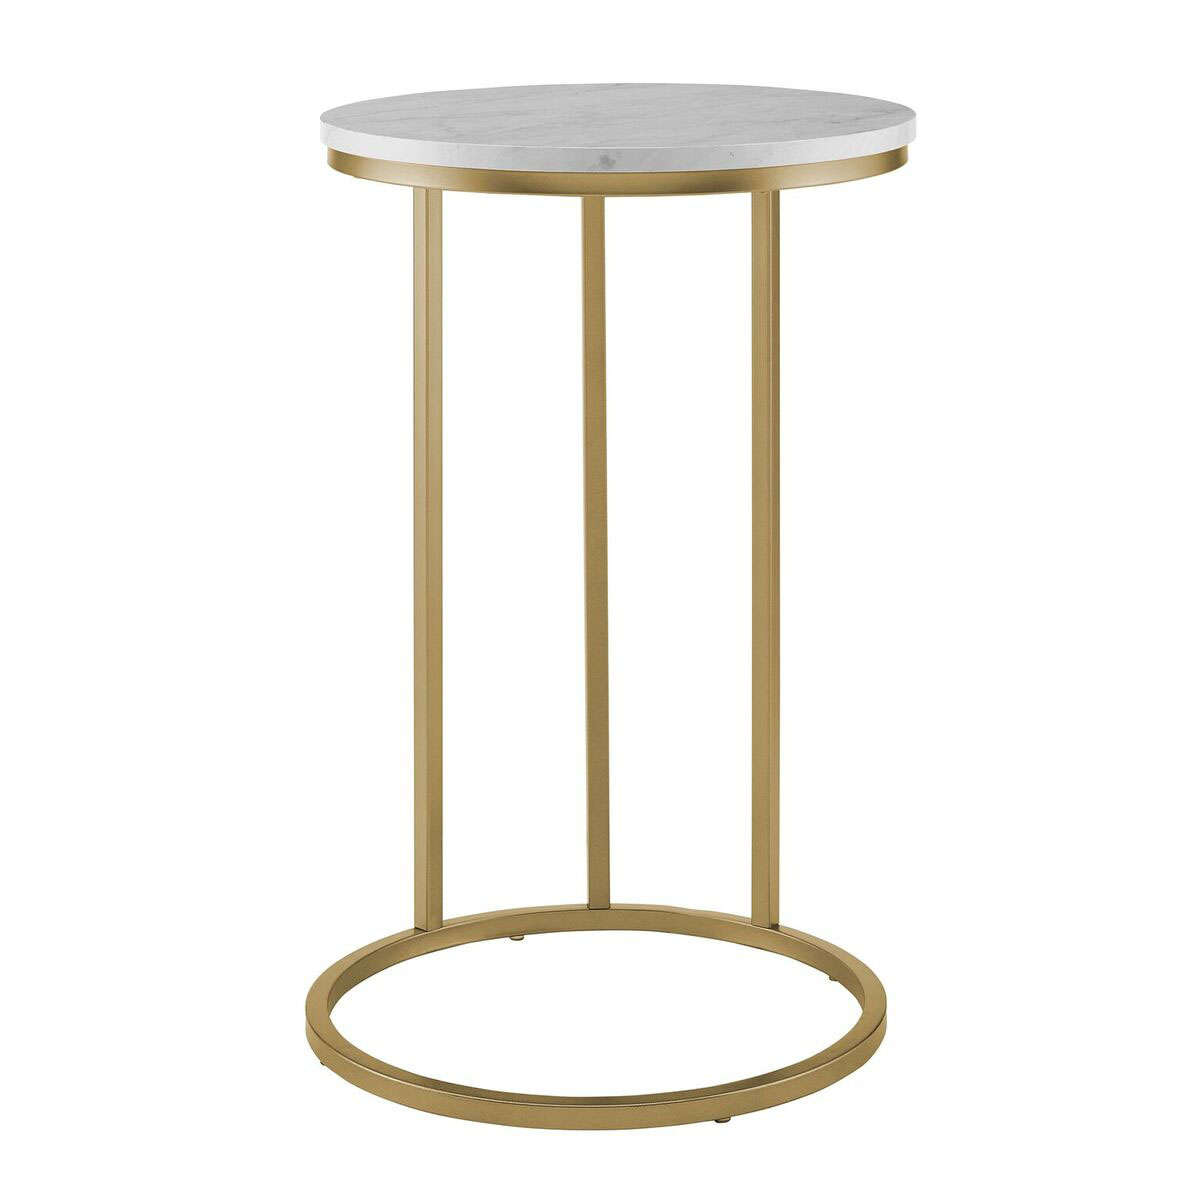 We Furniture 16 Round C Table White Marble Top Gold Base 2